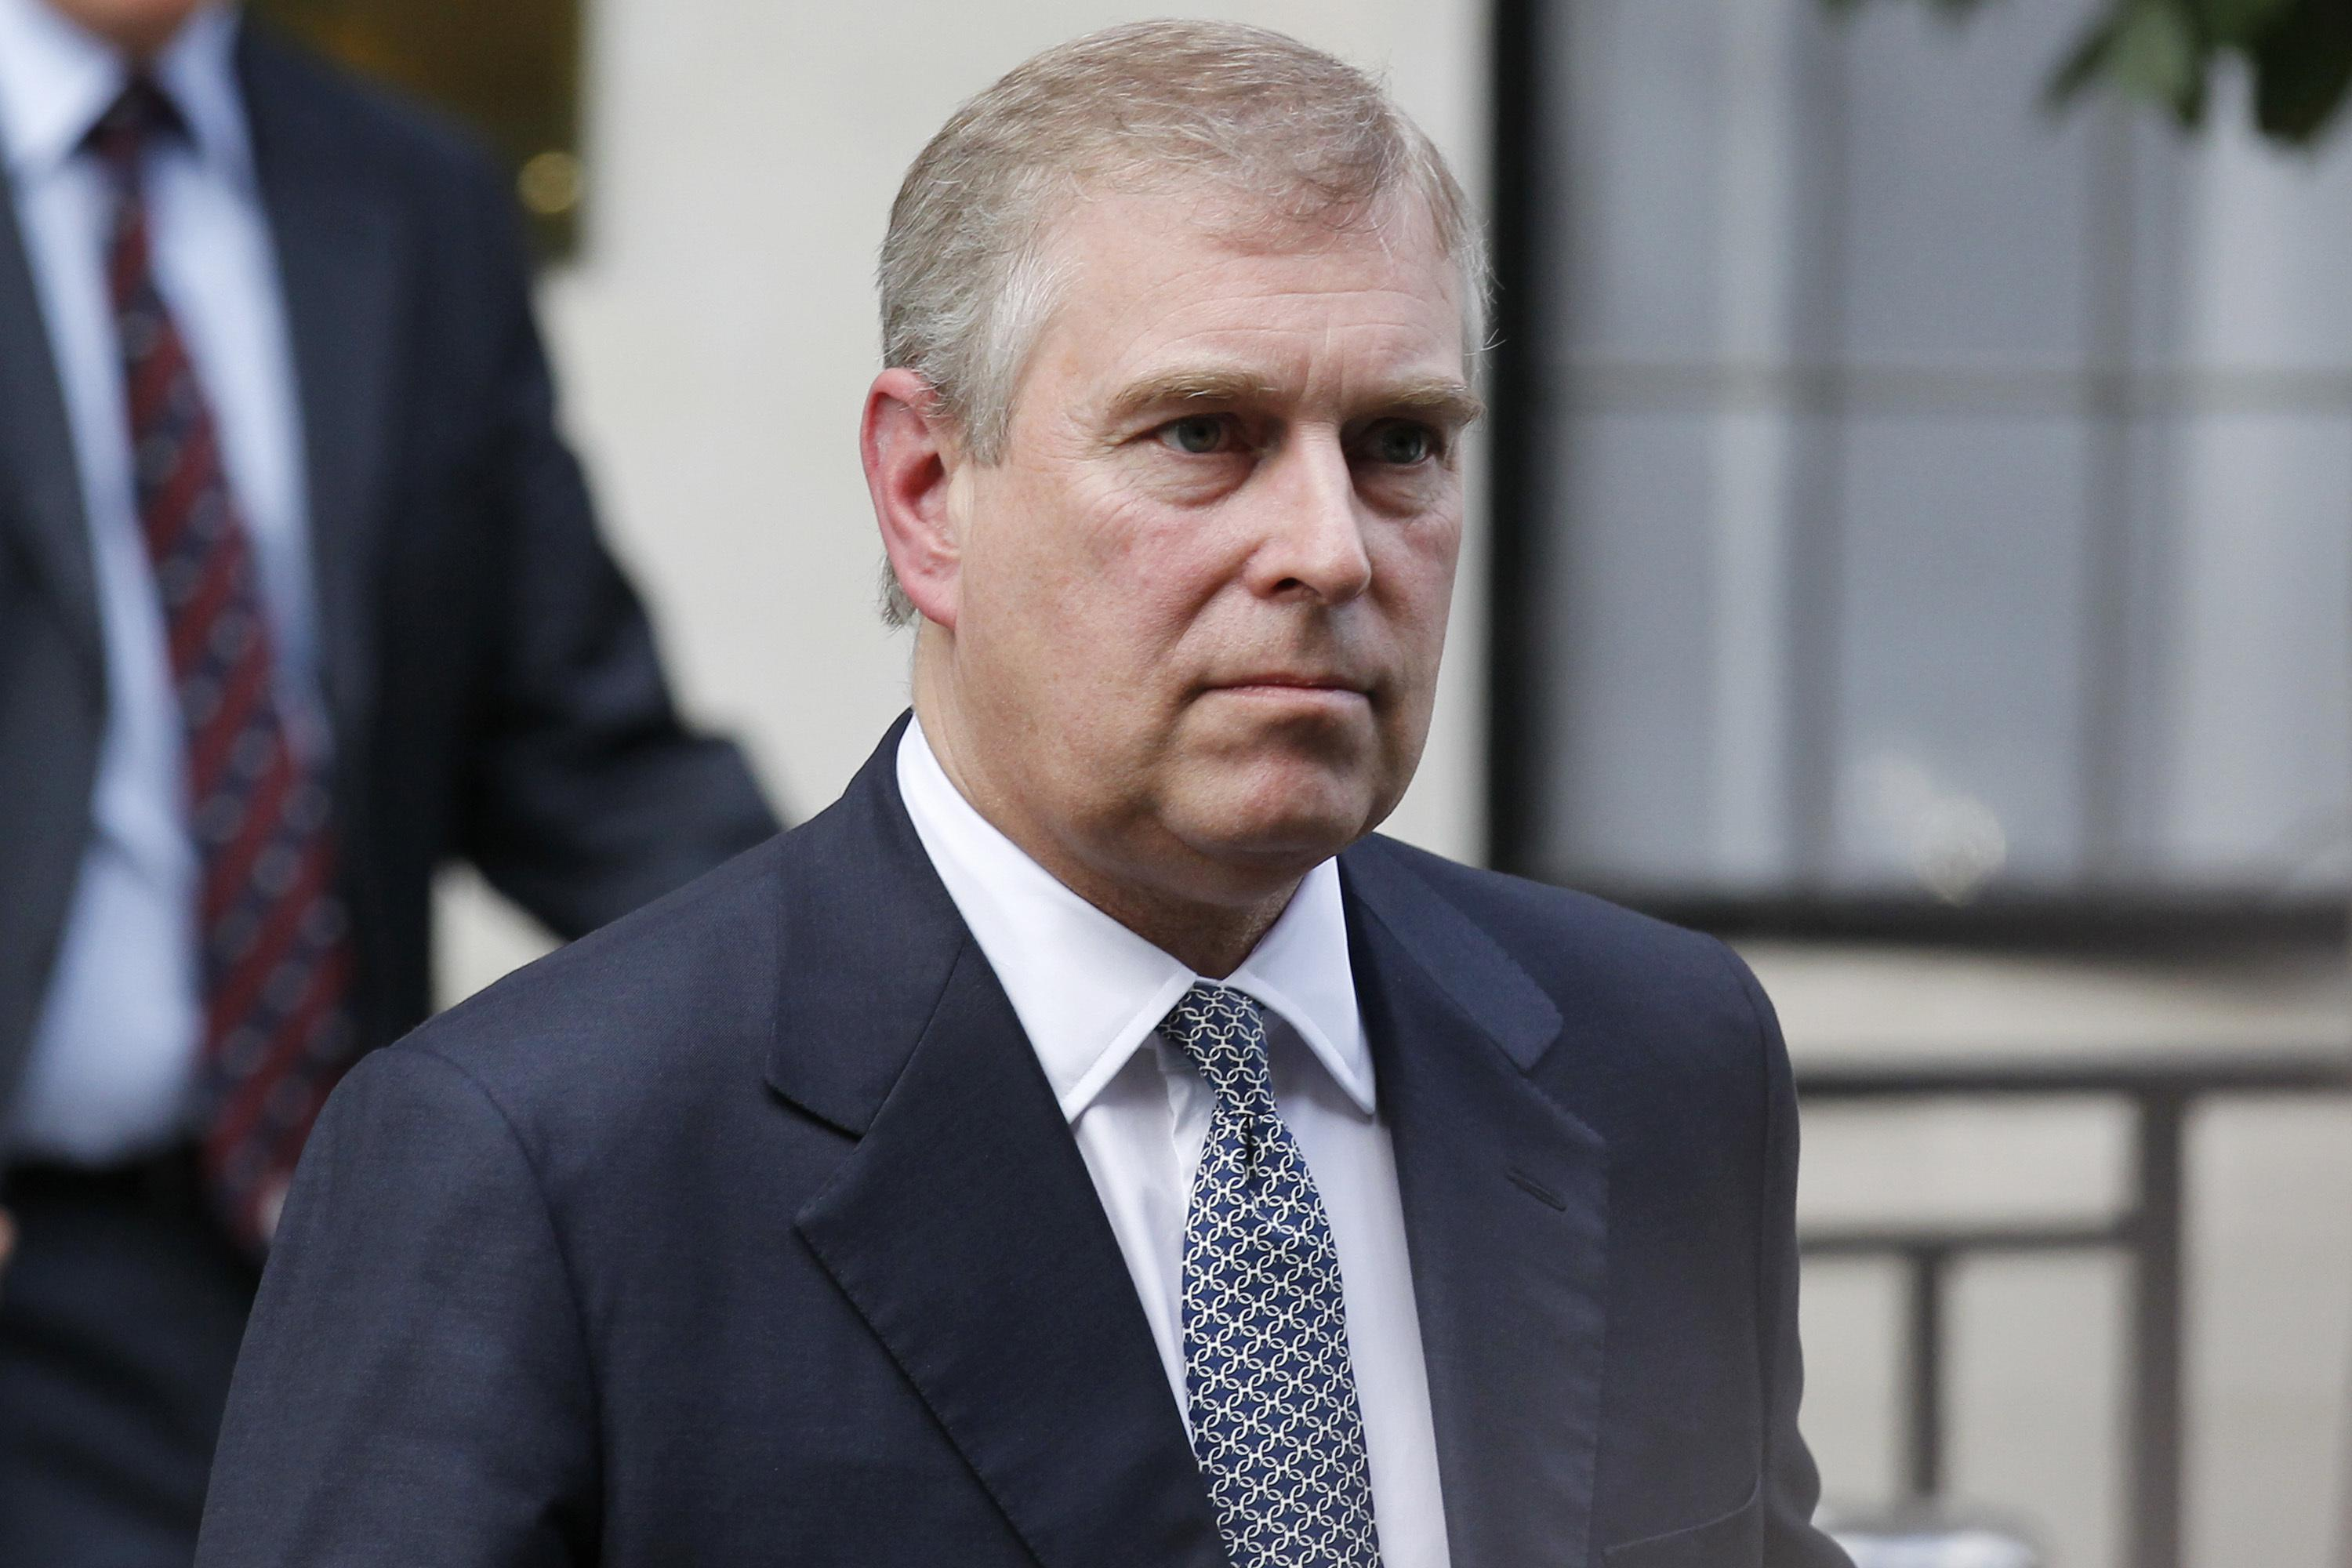 Prince Andrew: Staying at convicted sex-offender Epstein's mansion was 'wrong thing to do'